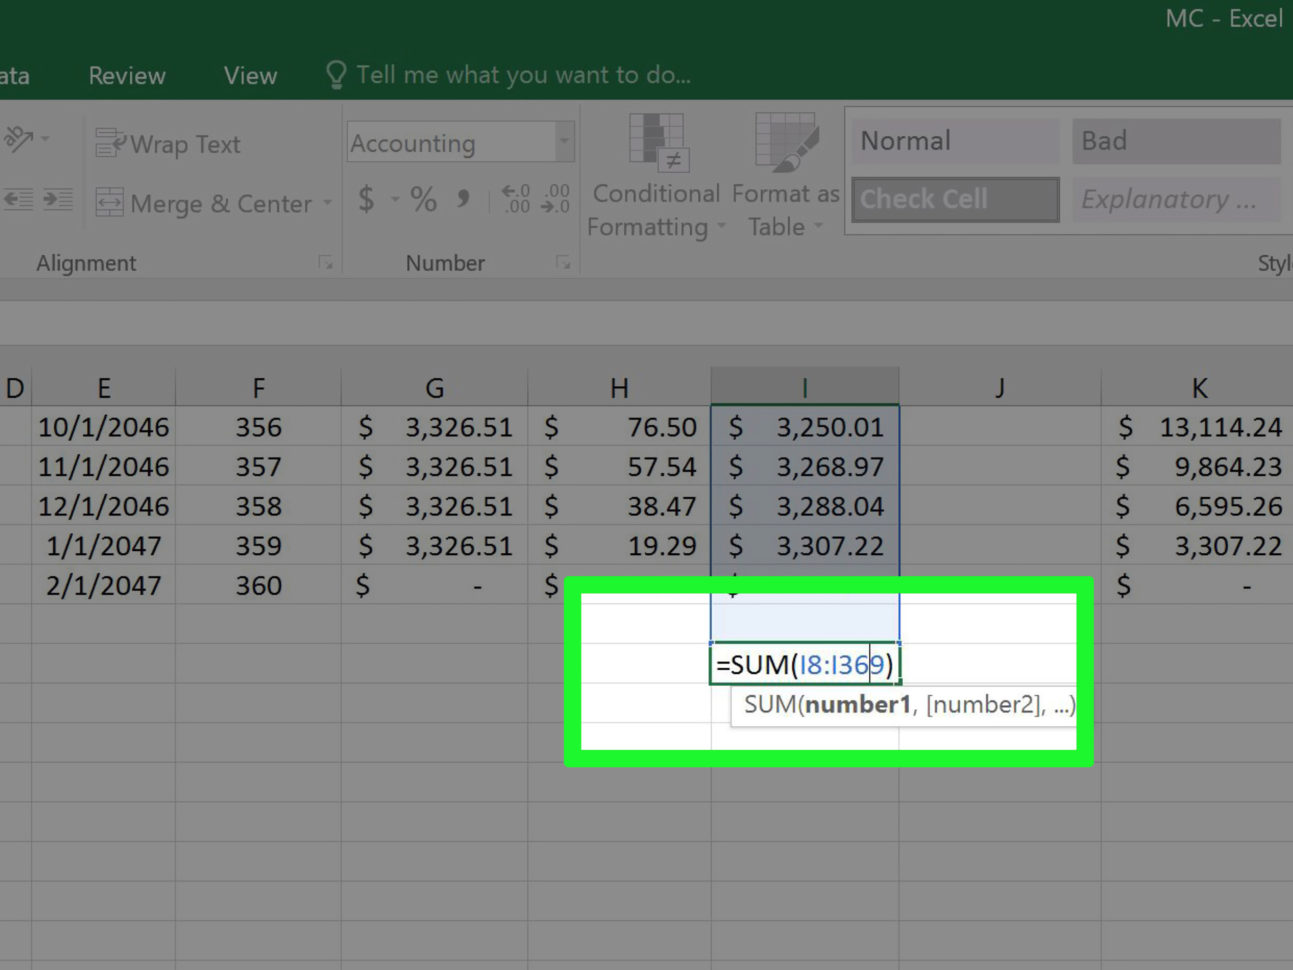 Amortization Spreadsheet With Extra Payments Google Sheets For Mortgage Excel Spreadsheet Calculator With Taxes And Insurance